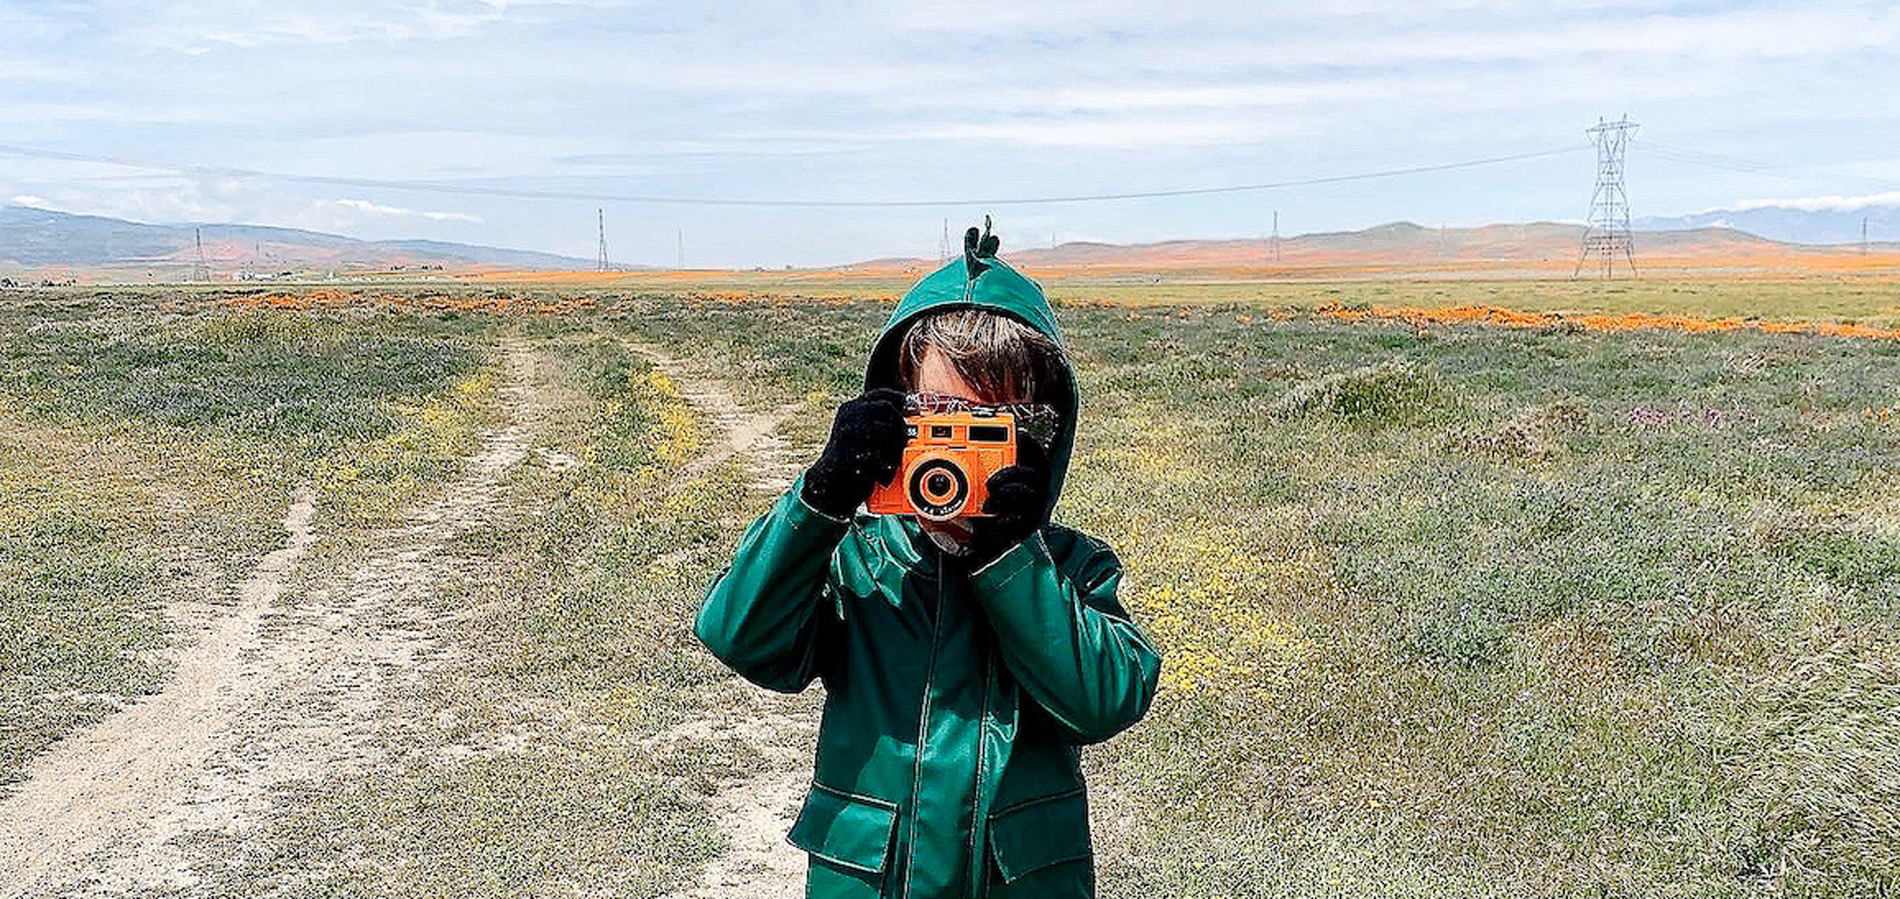 Child pointing camera at camera while standing in open pasture